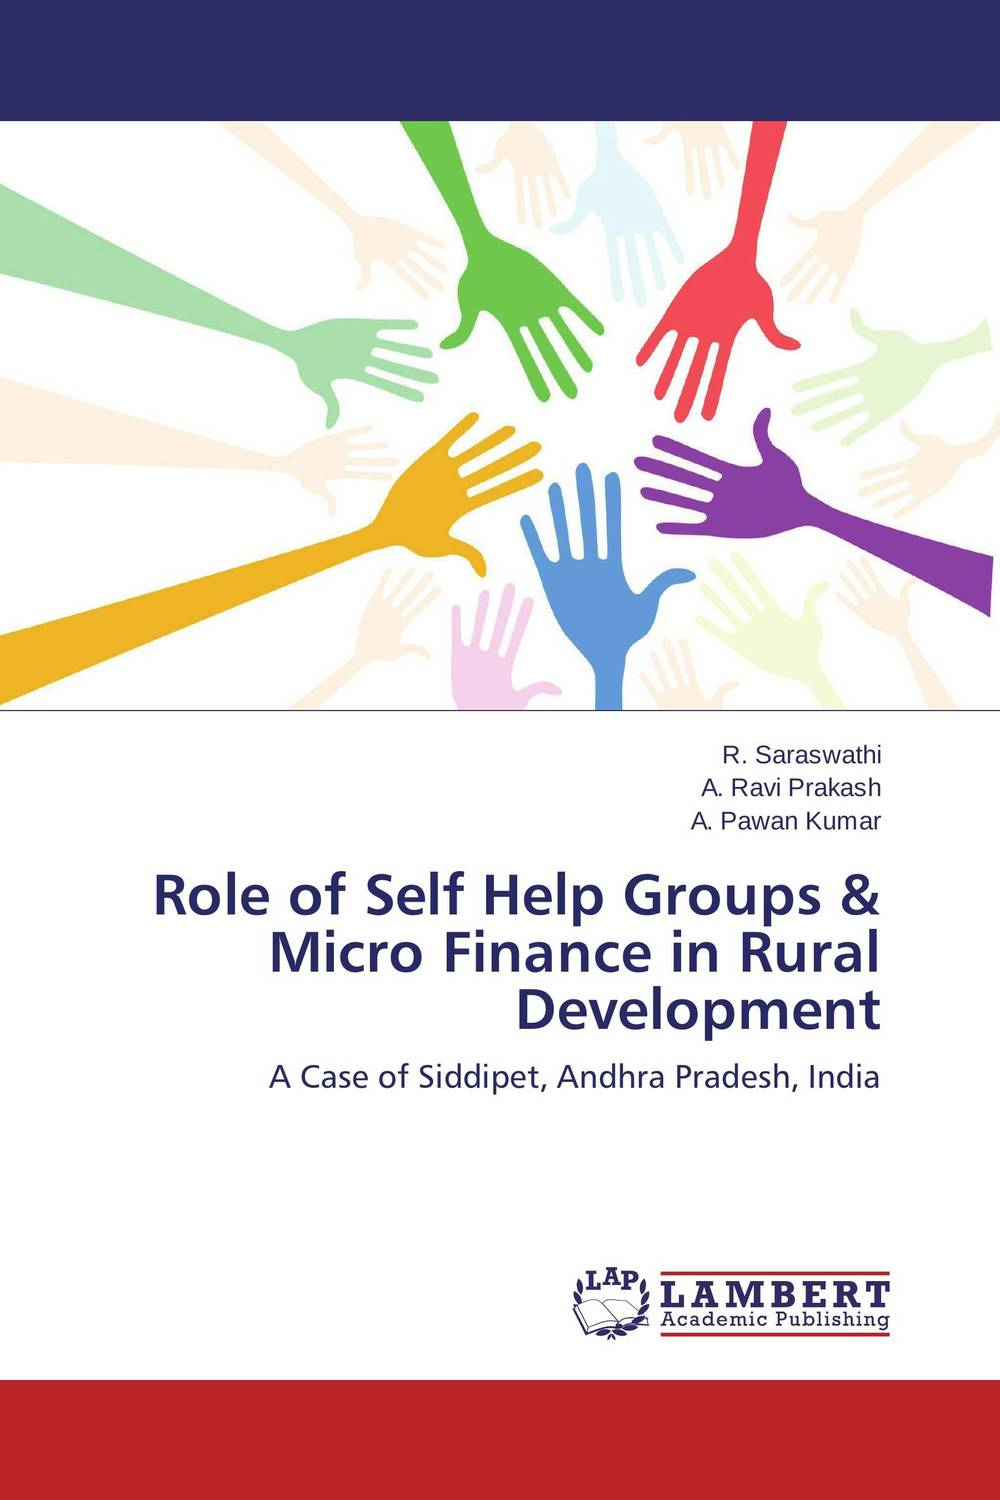 Role of Self Help Groups & Micro Finance in Rural Development jaynal ud din ahmed and mohd abdul rashid institutional finance for micro and small entreprises in india